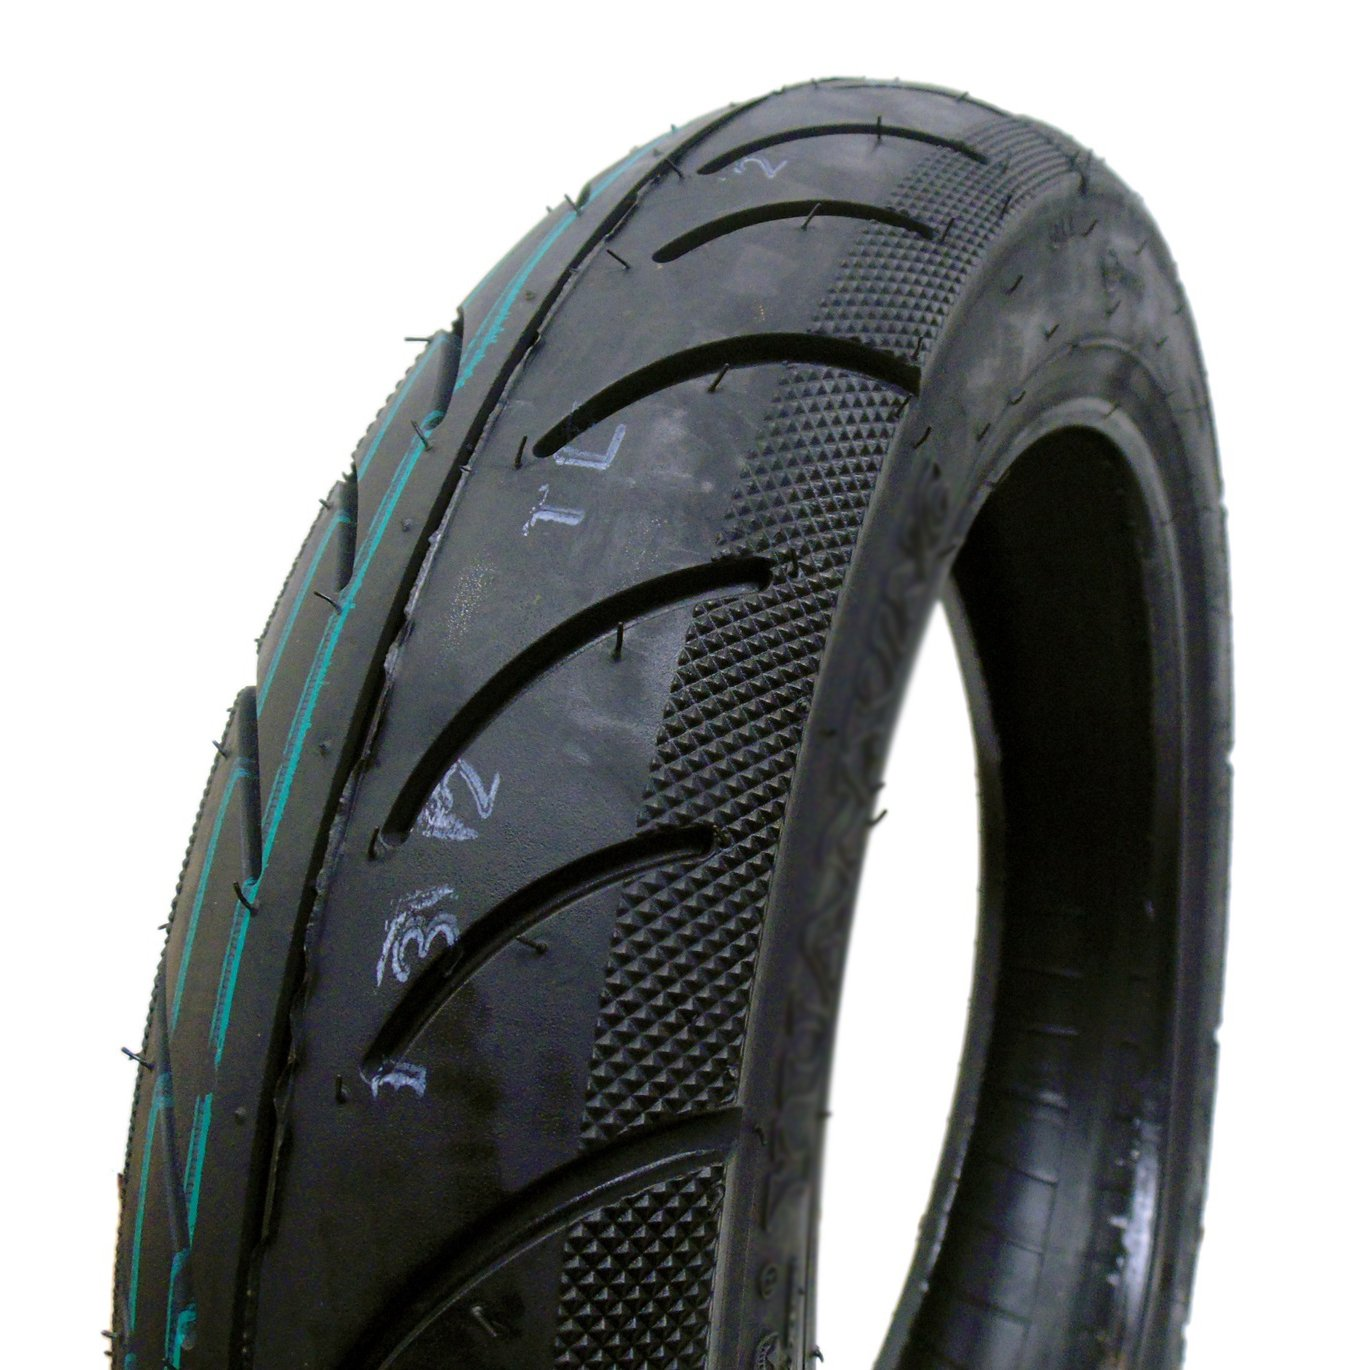 Tire 90/90-12 Tubeless Front/Rear Motorcycle Scooter Moped MMG 4333046711